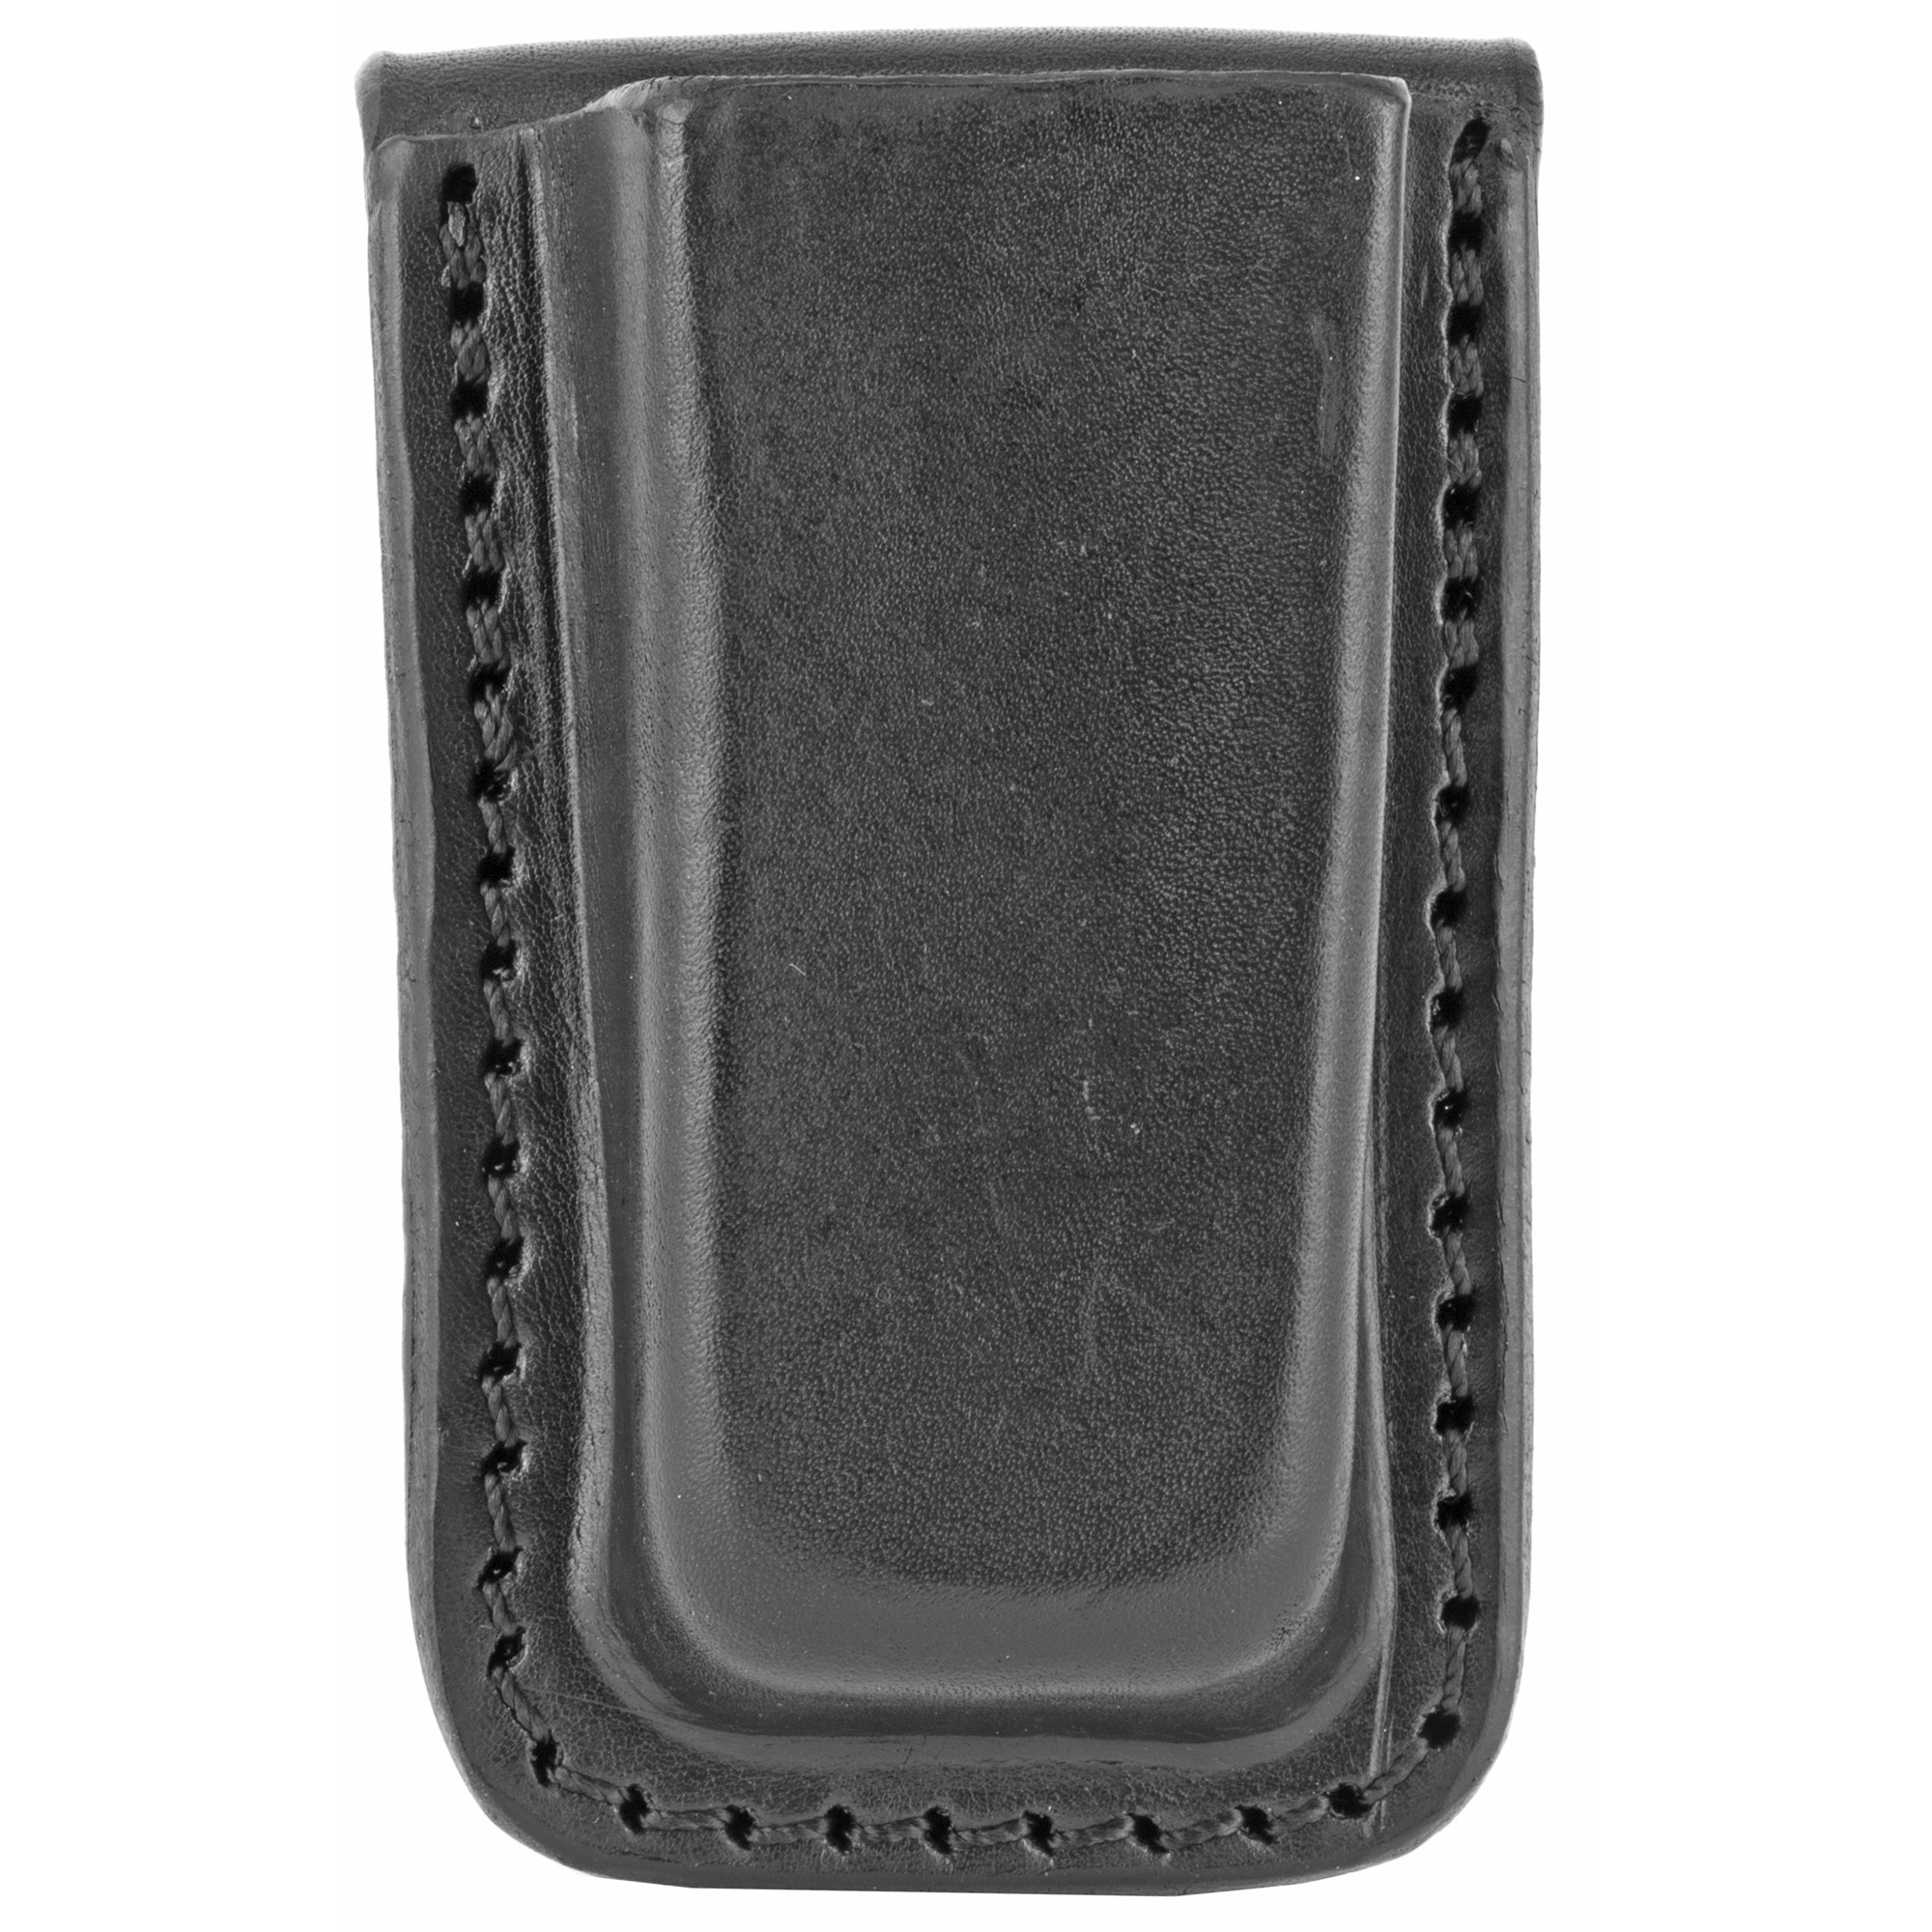 Tagua Tagua Mc5 Smp For Glk 9/40 Ambi Blk